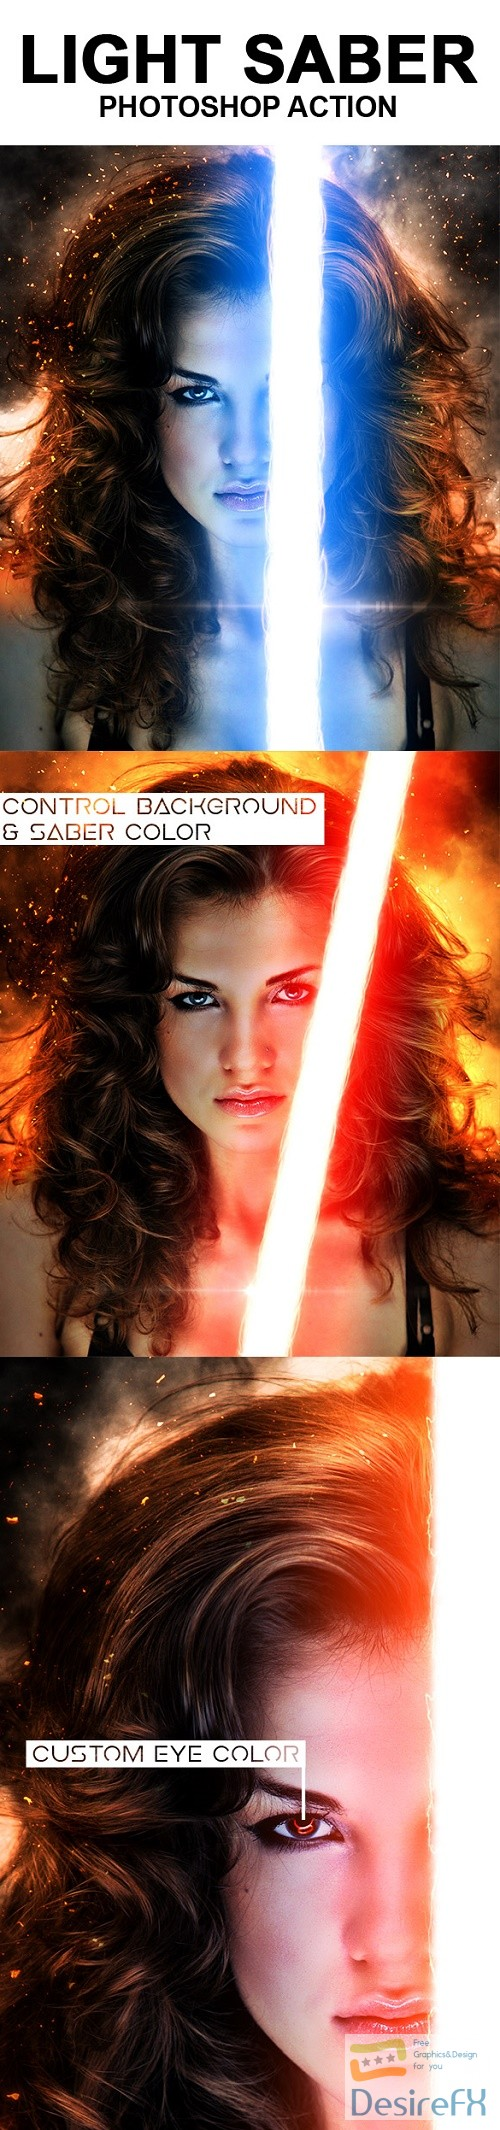 actions-atn - Light Saber Photoshop Action 18542969